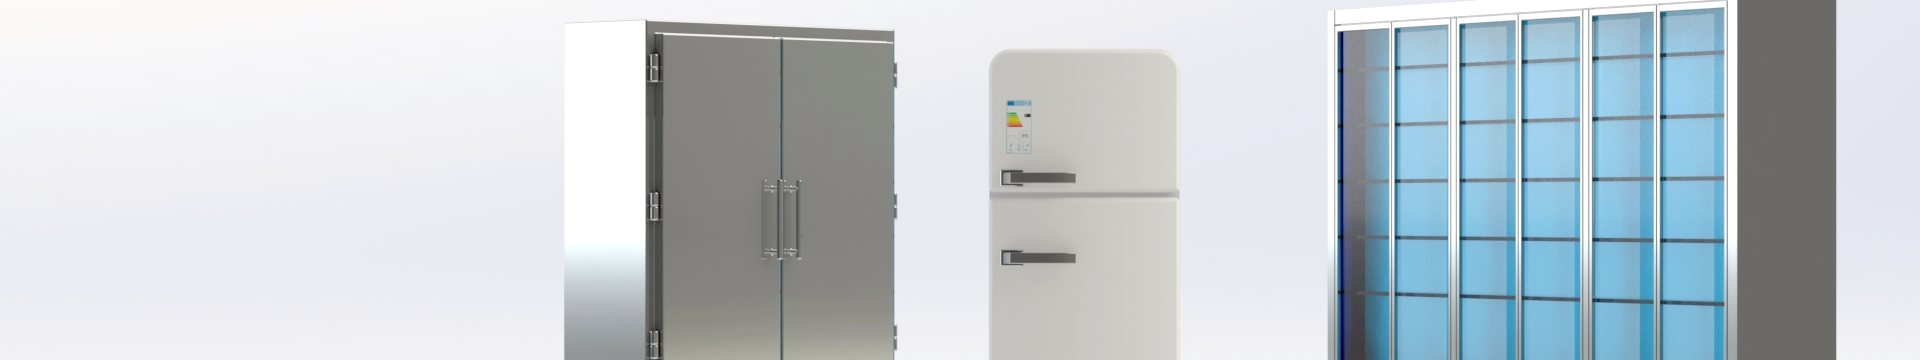 VHK_fridges3_1920x360.jpg